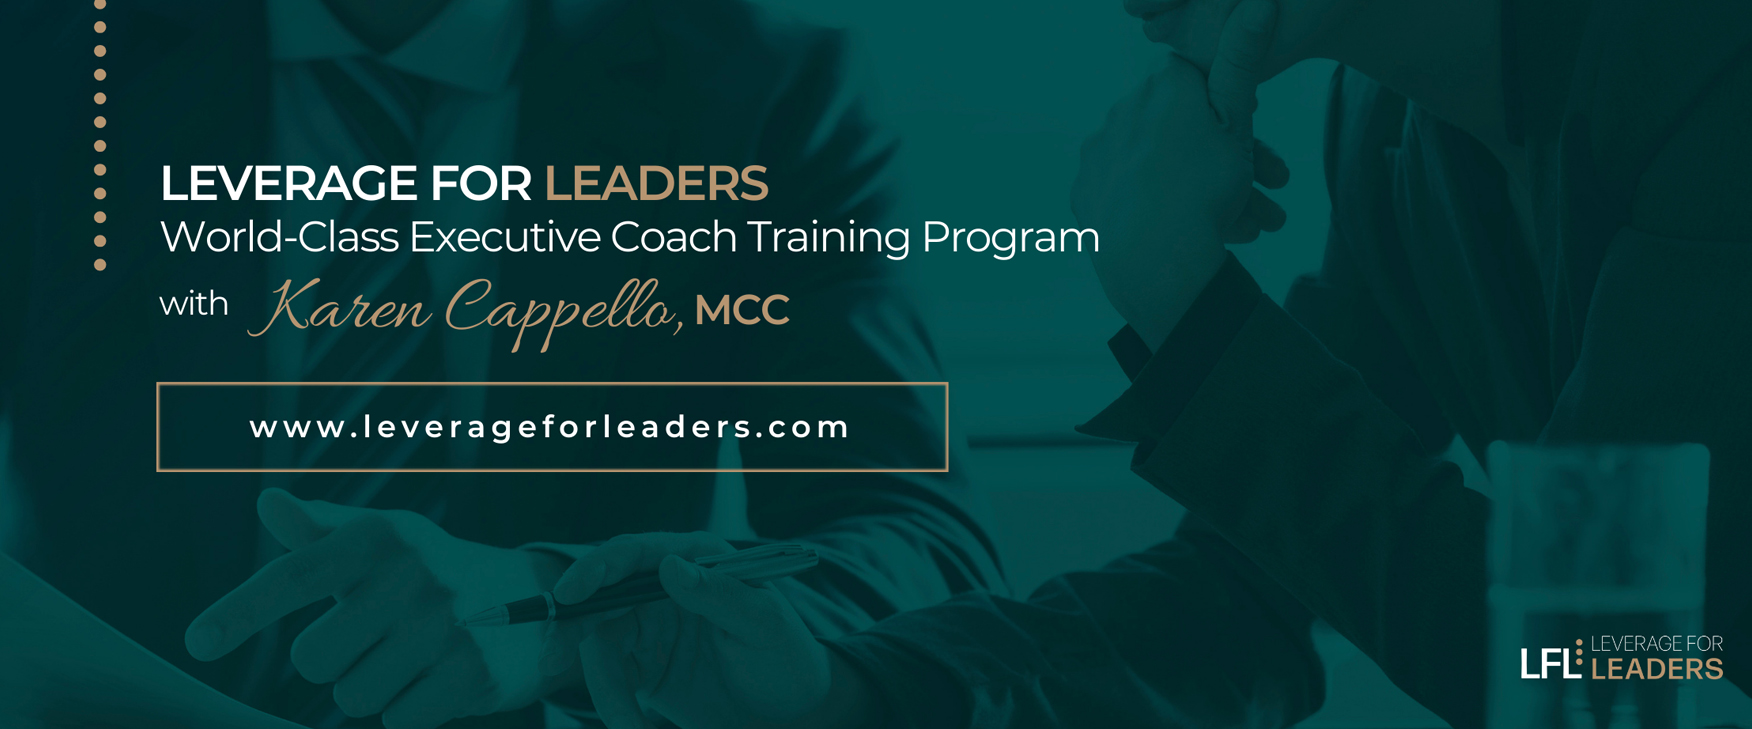 Leverage for Leaders with Karen Cappello, MCC